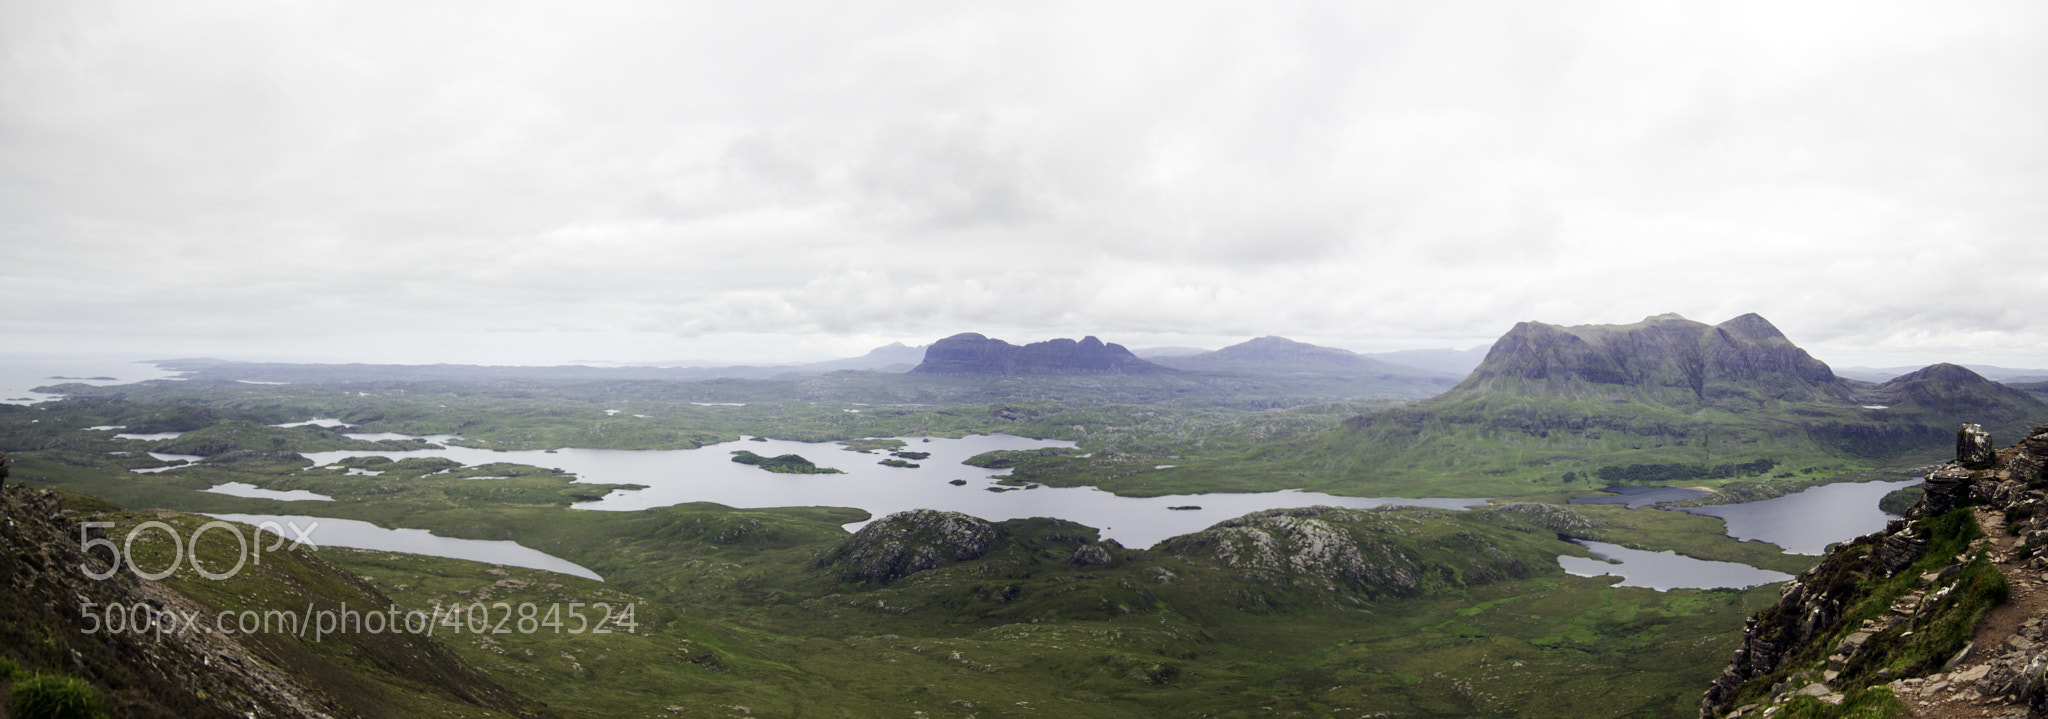 Photograph View from Stac Polly by Dan James on 500px